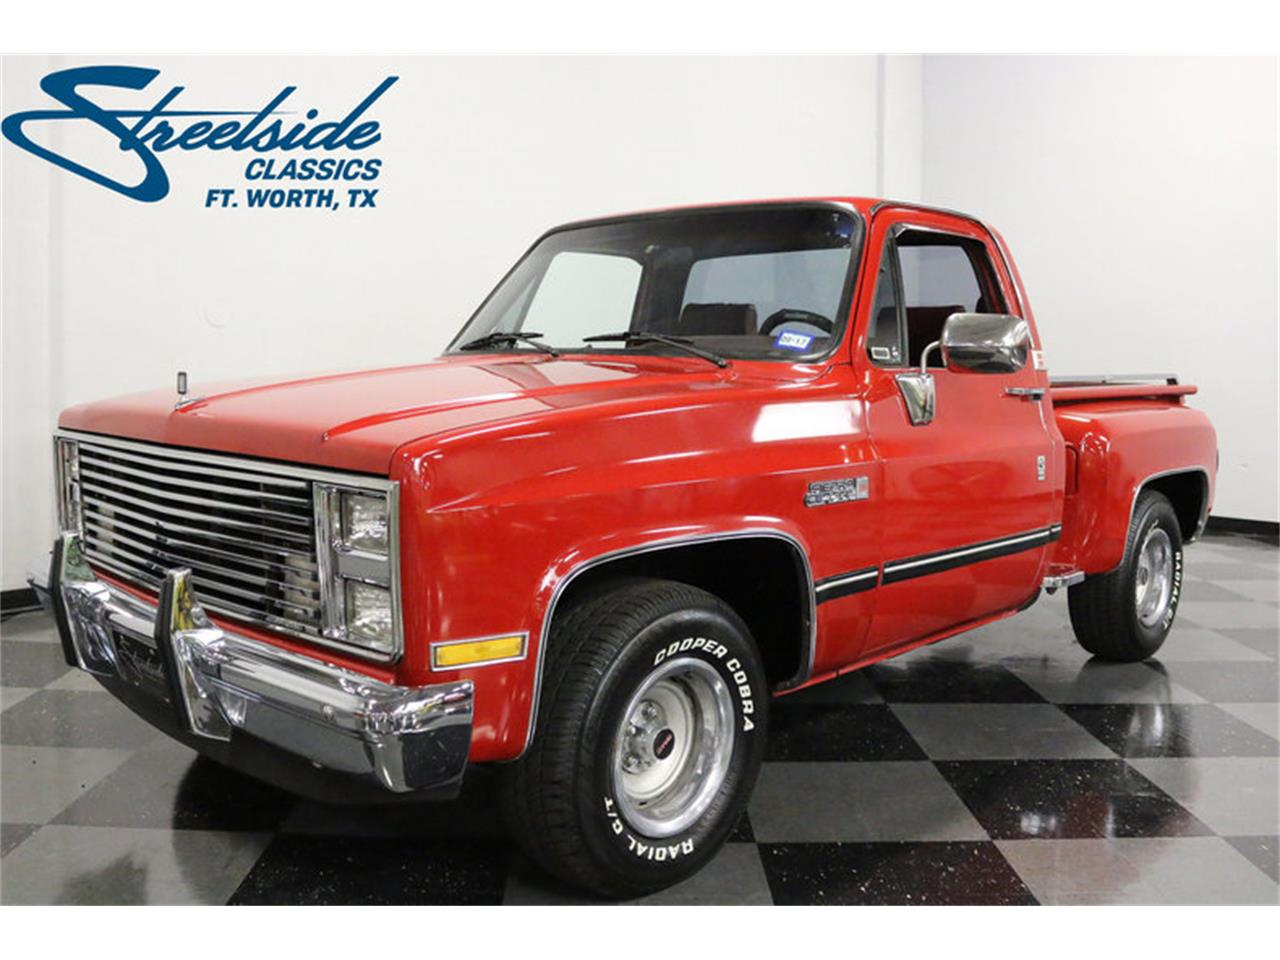 hight resolution of large picture of 87 gmc sierra located in texas 17 995 00 nc49